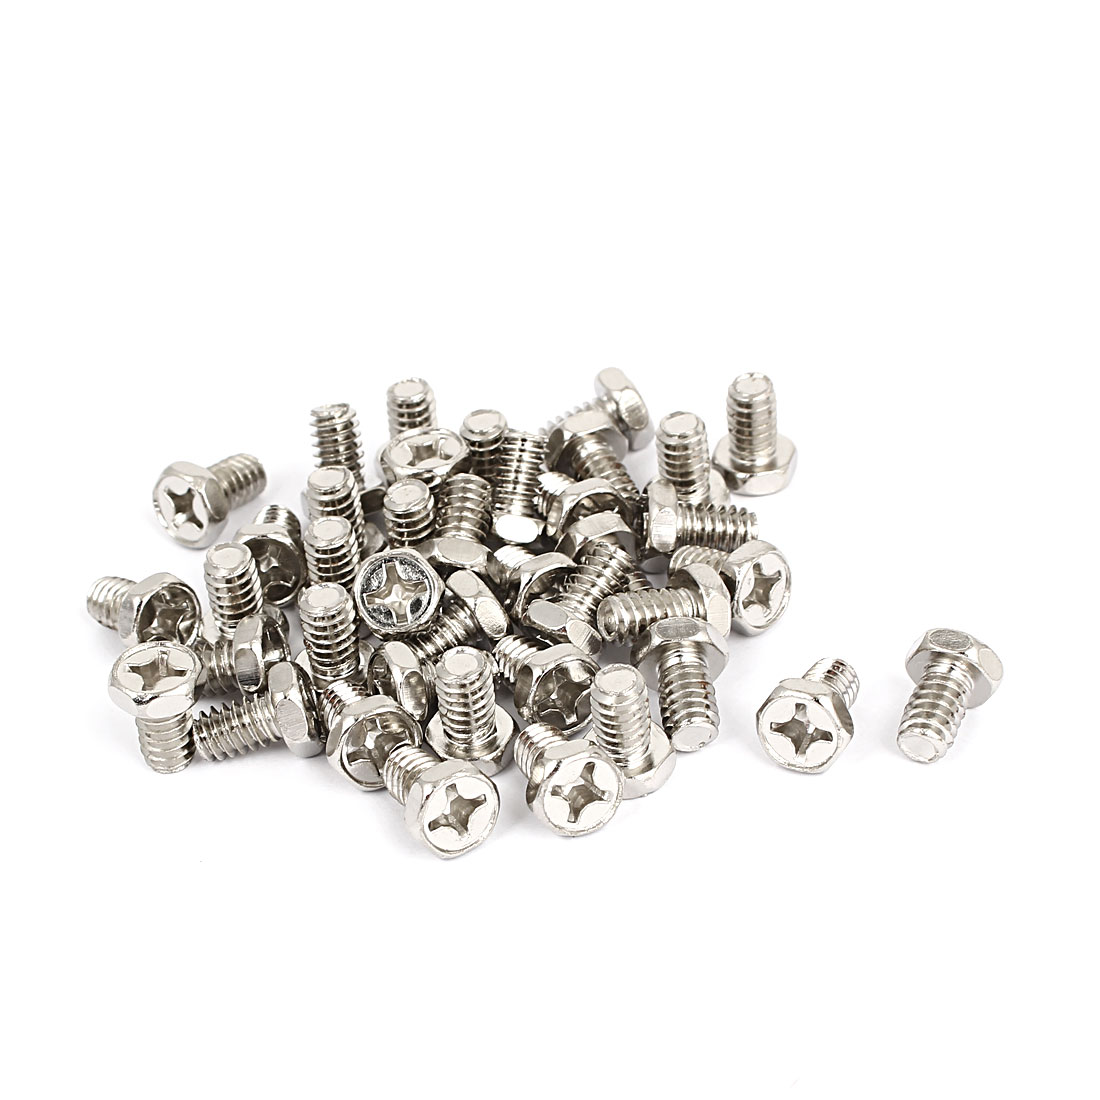 M6 x 10mm Hex Bolts Tap Phillips Head Screws Fastener Silver Tone 40pcs